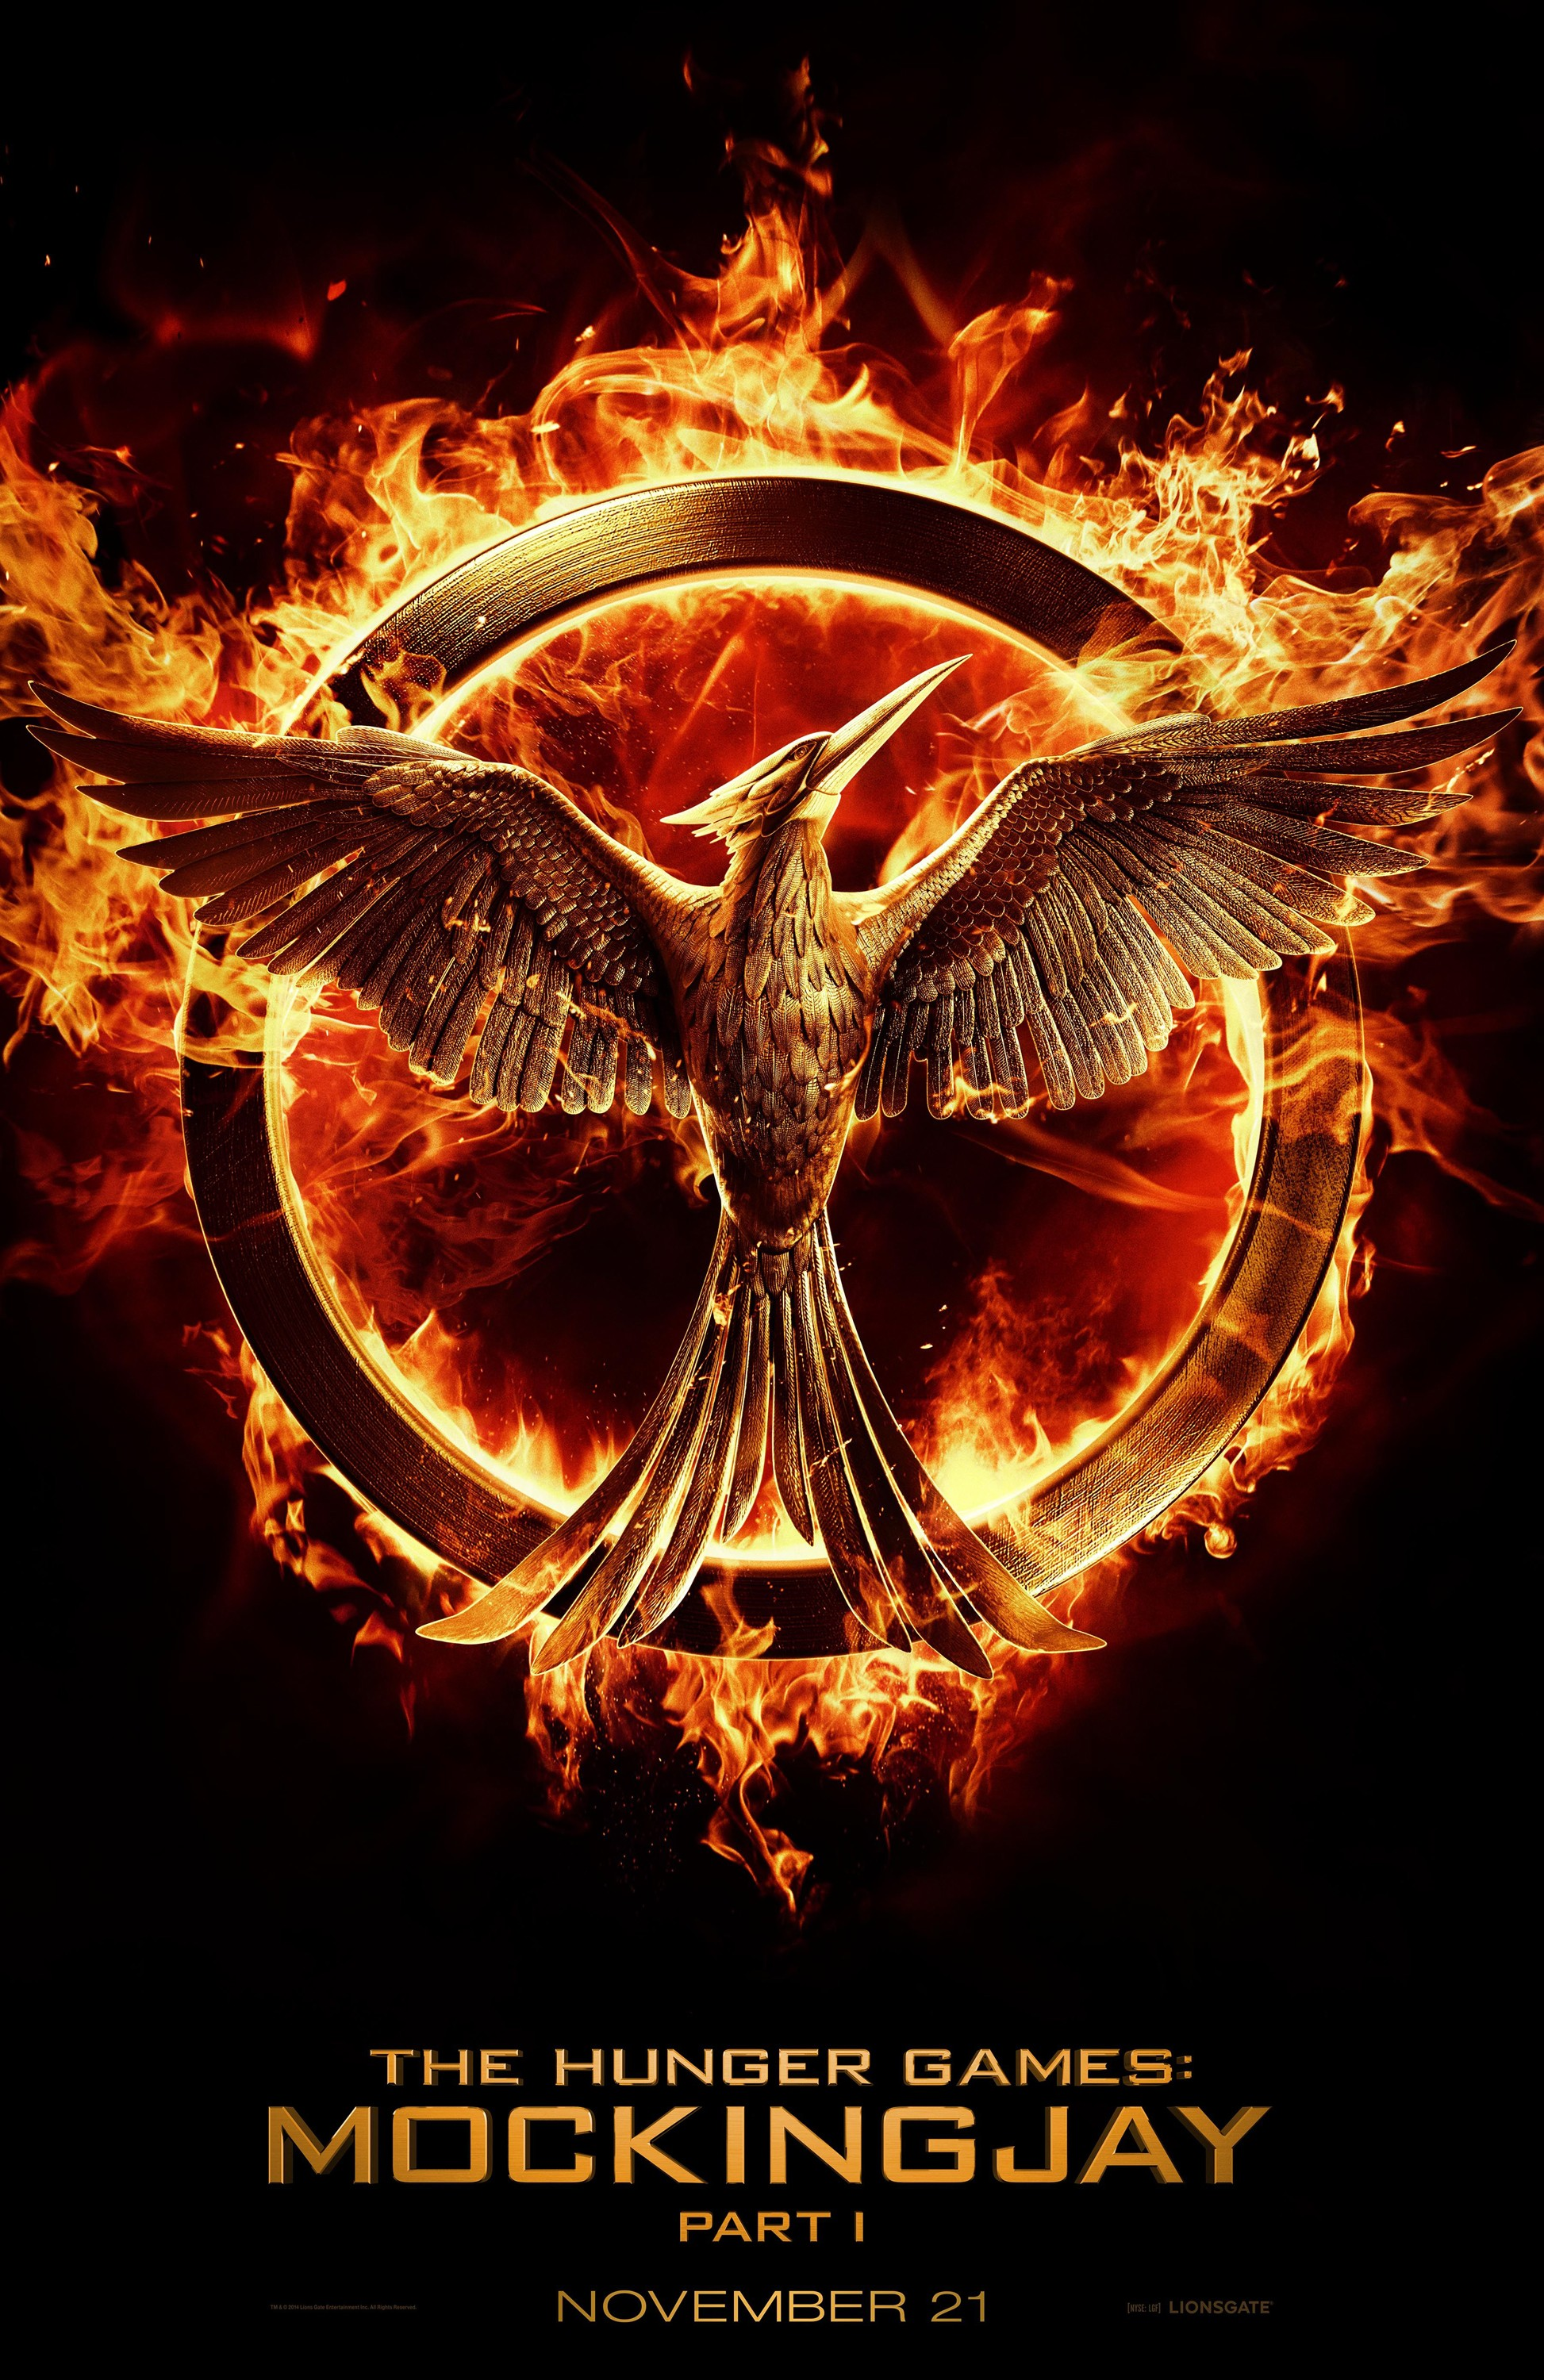 The Hunger Games Mockingjay - Part 1-Official Poster Banner PROMO POSTER XXLG-23JANEIRO2014